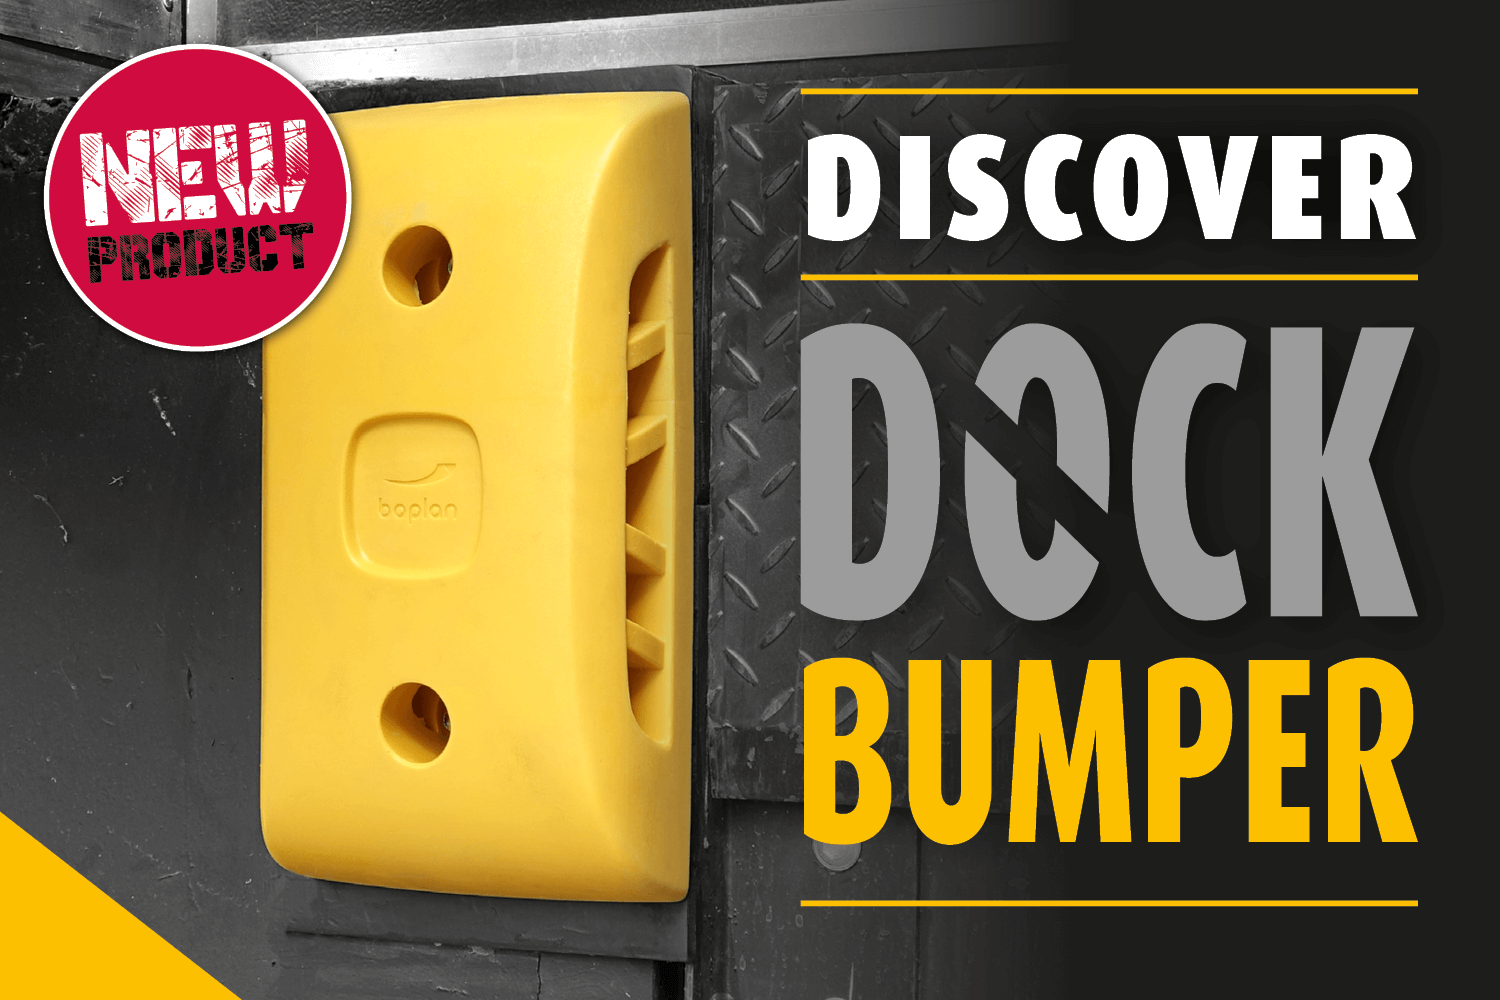 Dock Bumper, anticollision protection for loading docks